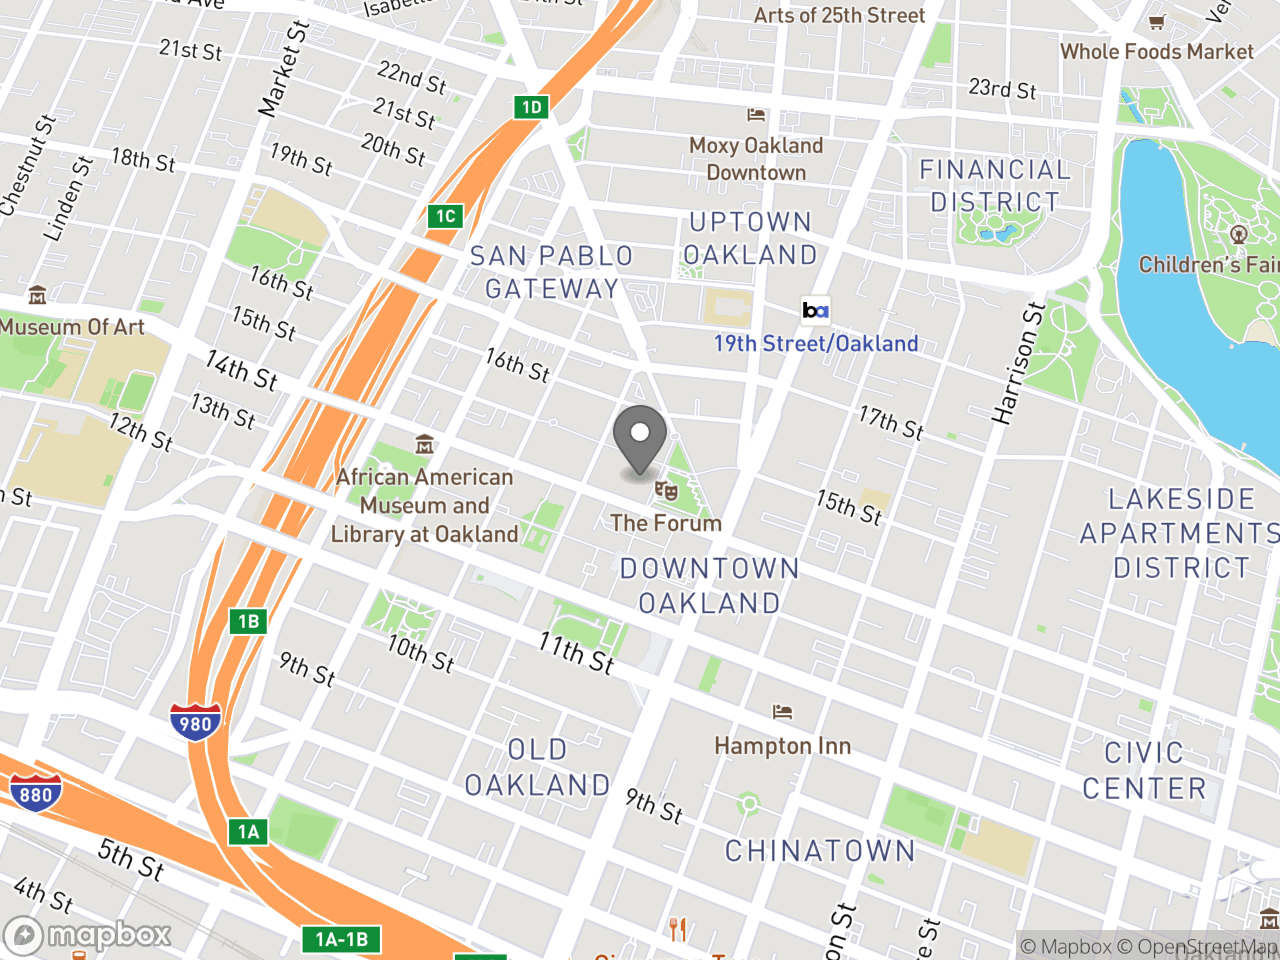 Map location for 12-3-18 PAAC Meeting, located at 1 Frank H Ogawa Plaza in Oakland, CA 94612